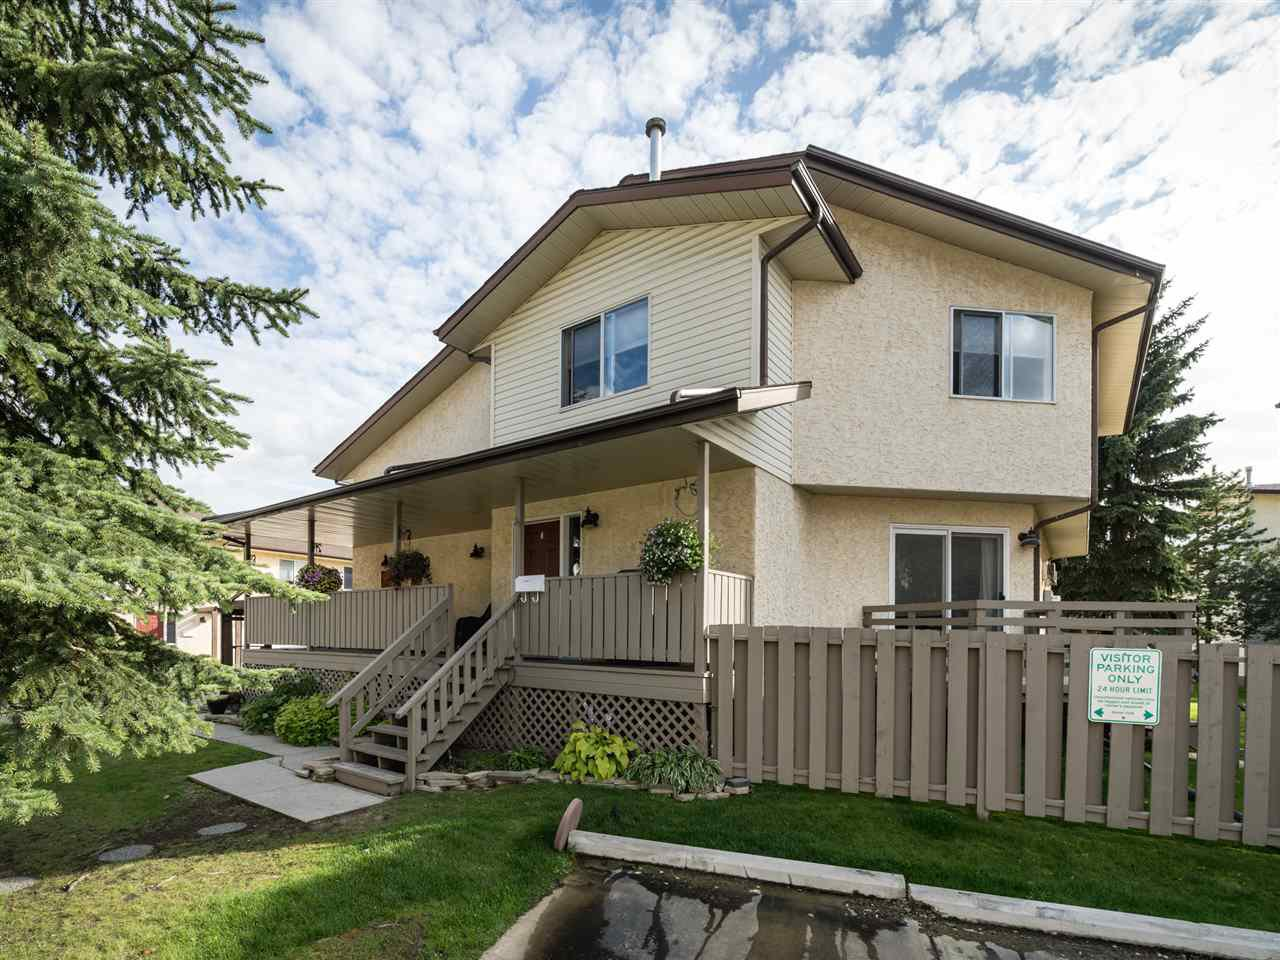 Main Photo: 31 3811 85 Street in Edmonton: Zone 29 Townhouse for sale : MLS®# E4168937